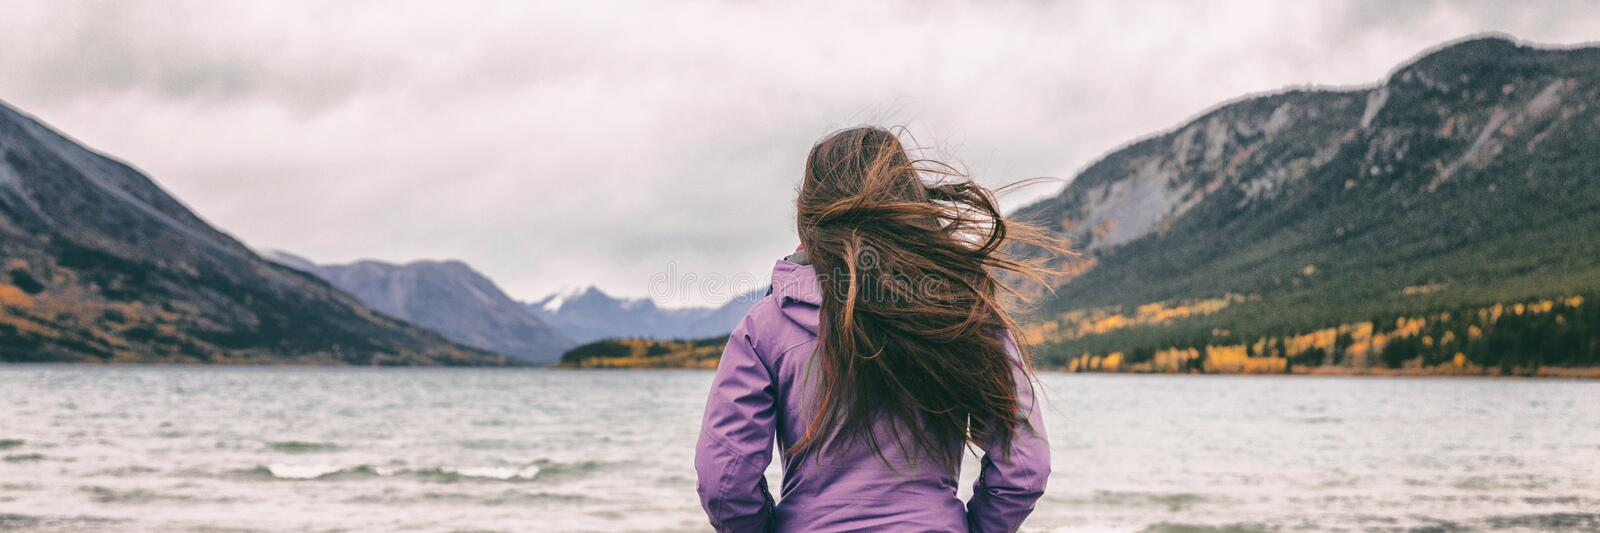 Nature travel panoramic banner woman hiker adventure wanderlust in Yukon travel tourist walking on beach in Carcross. Canada stock photos